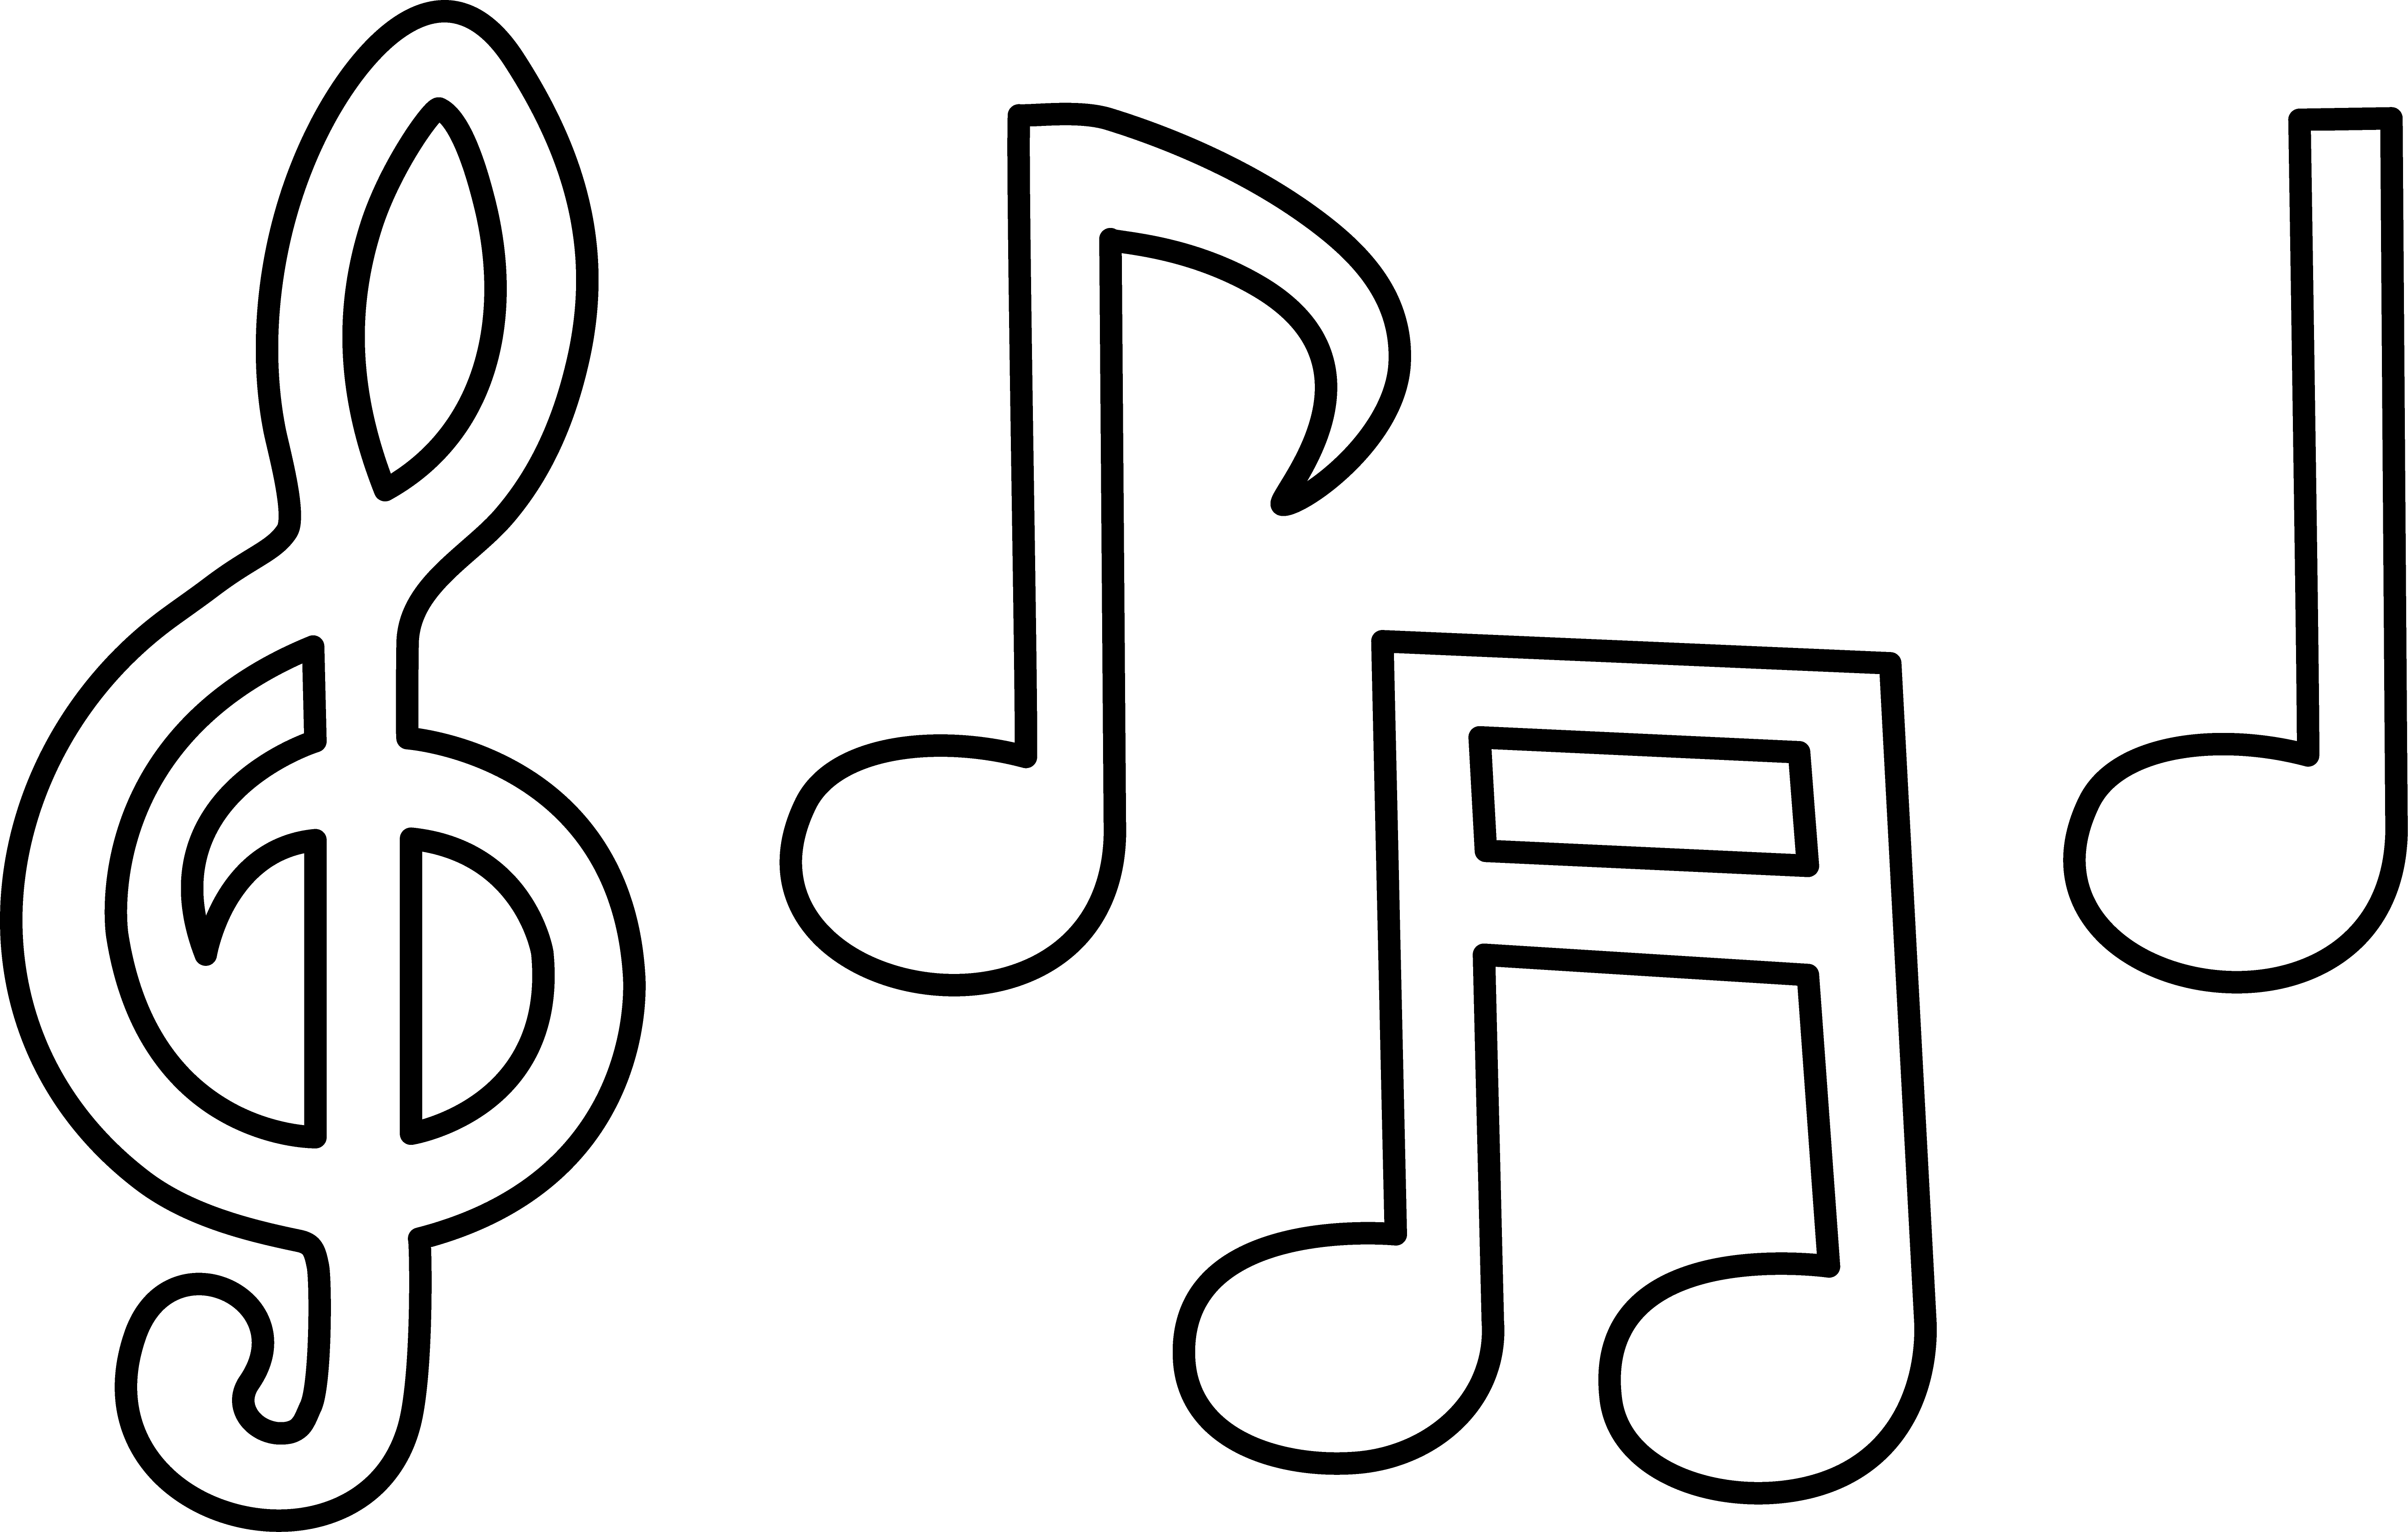 Free black and white clipart of music notes. Note download clip art